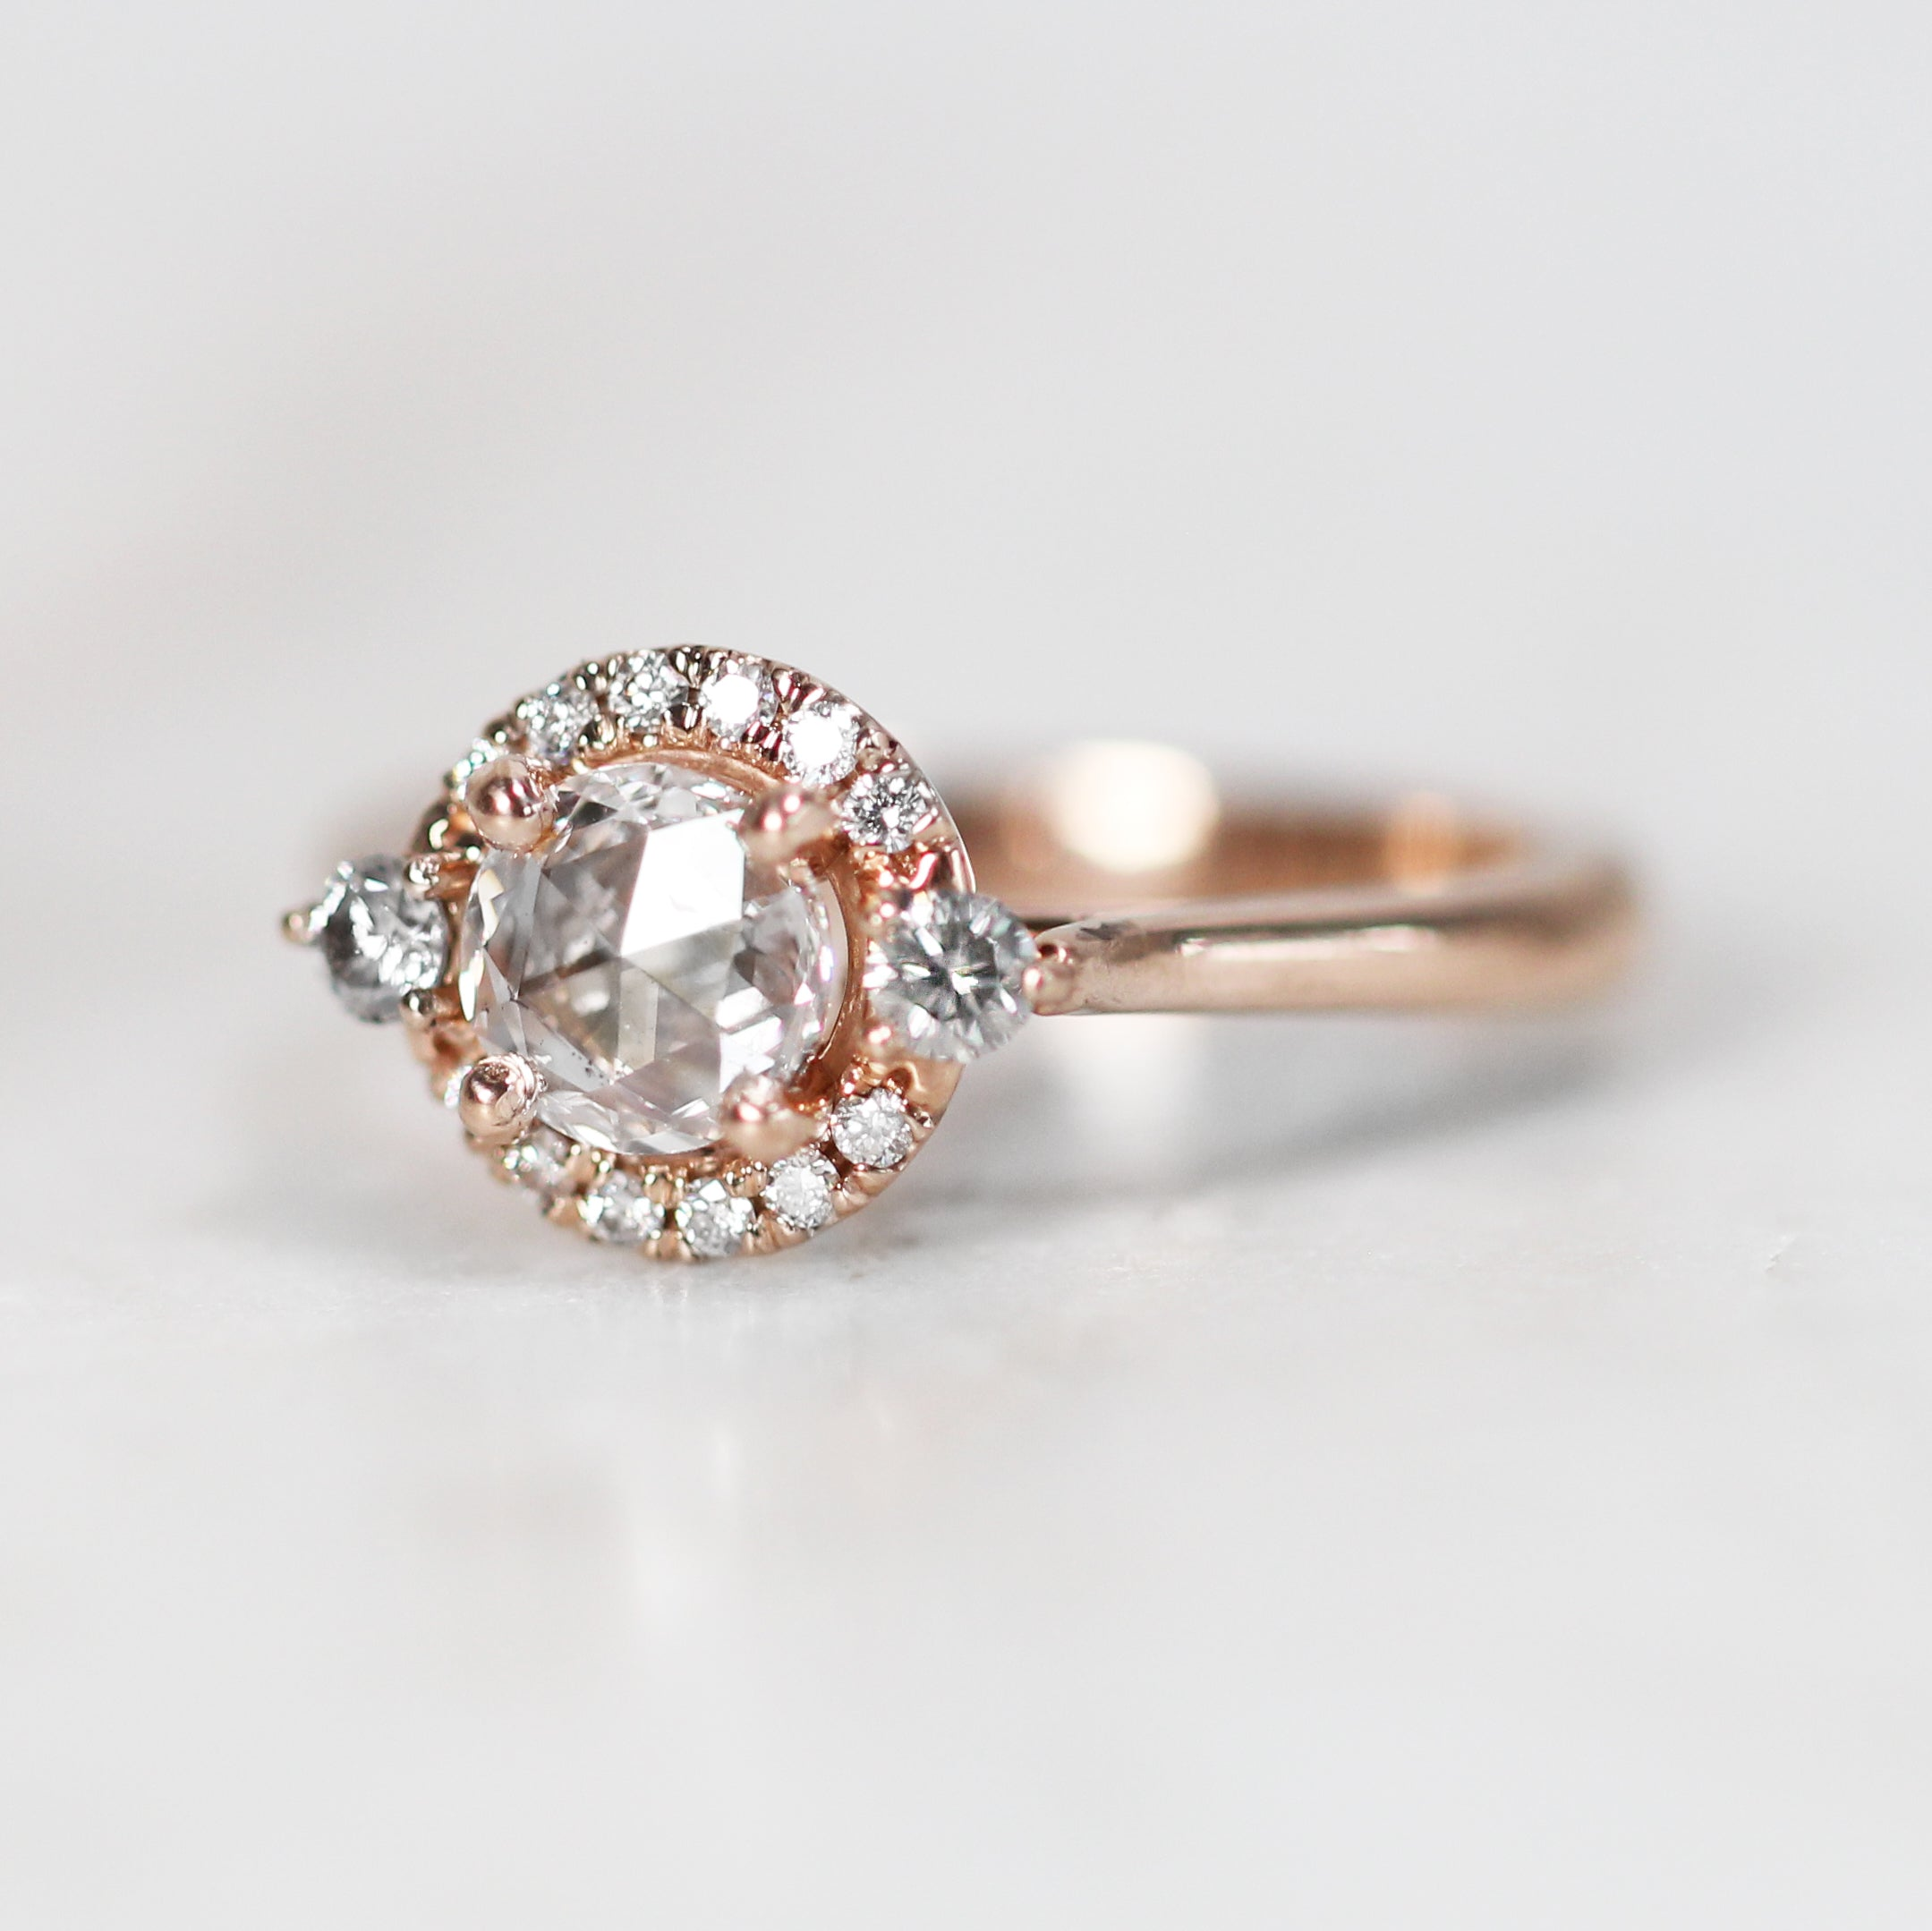 Vanessa Ring with .41 carat Rose Cut Round Diamond in 10k Rose Gold - Ready to Size and Ship - Salt & Pepper Celestial Diamond Engagement Rings and Wedding Bands  by Midwinter Co.